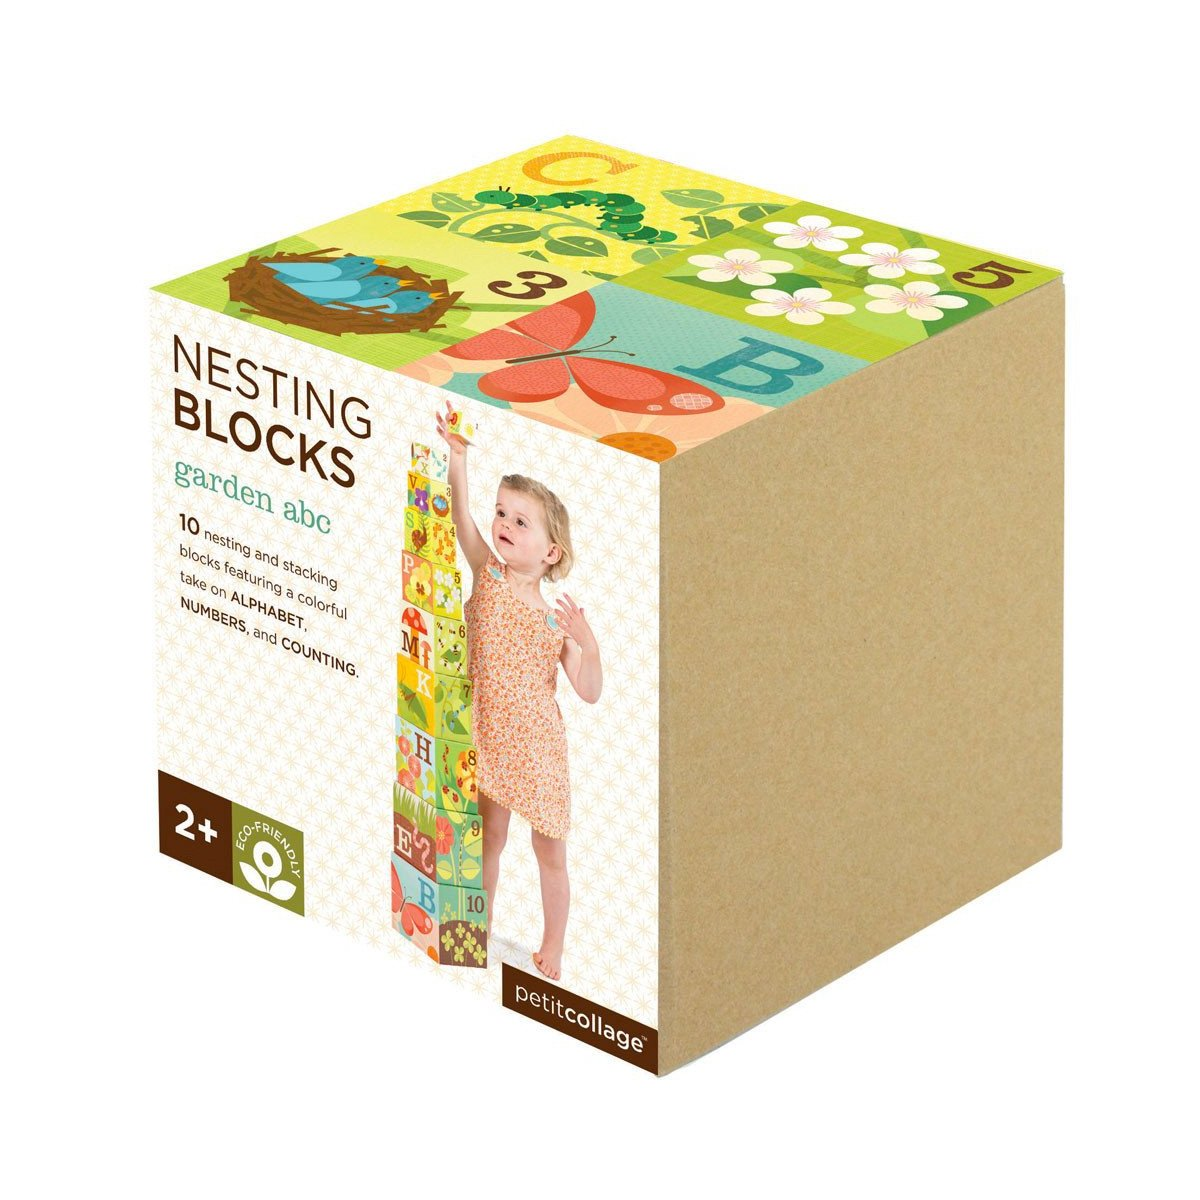 Petit Collage Nesting Blocks Petit Collage Activity Toys Garden ABC at Little Earth Nest Eco Shop